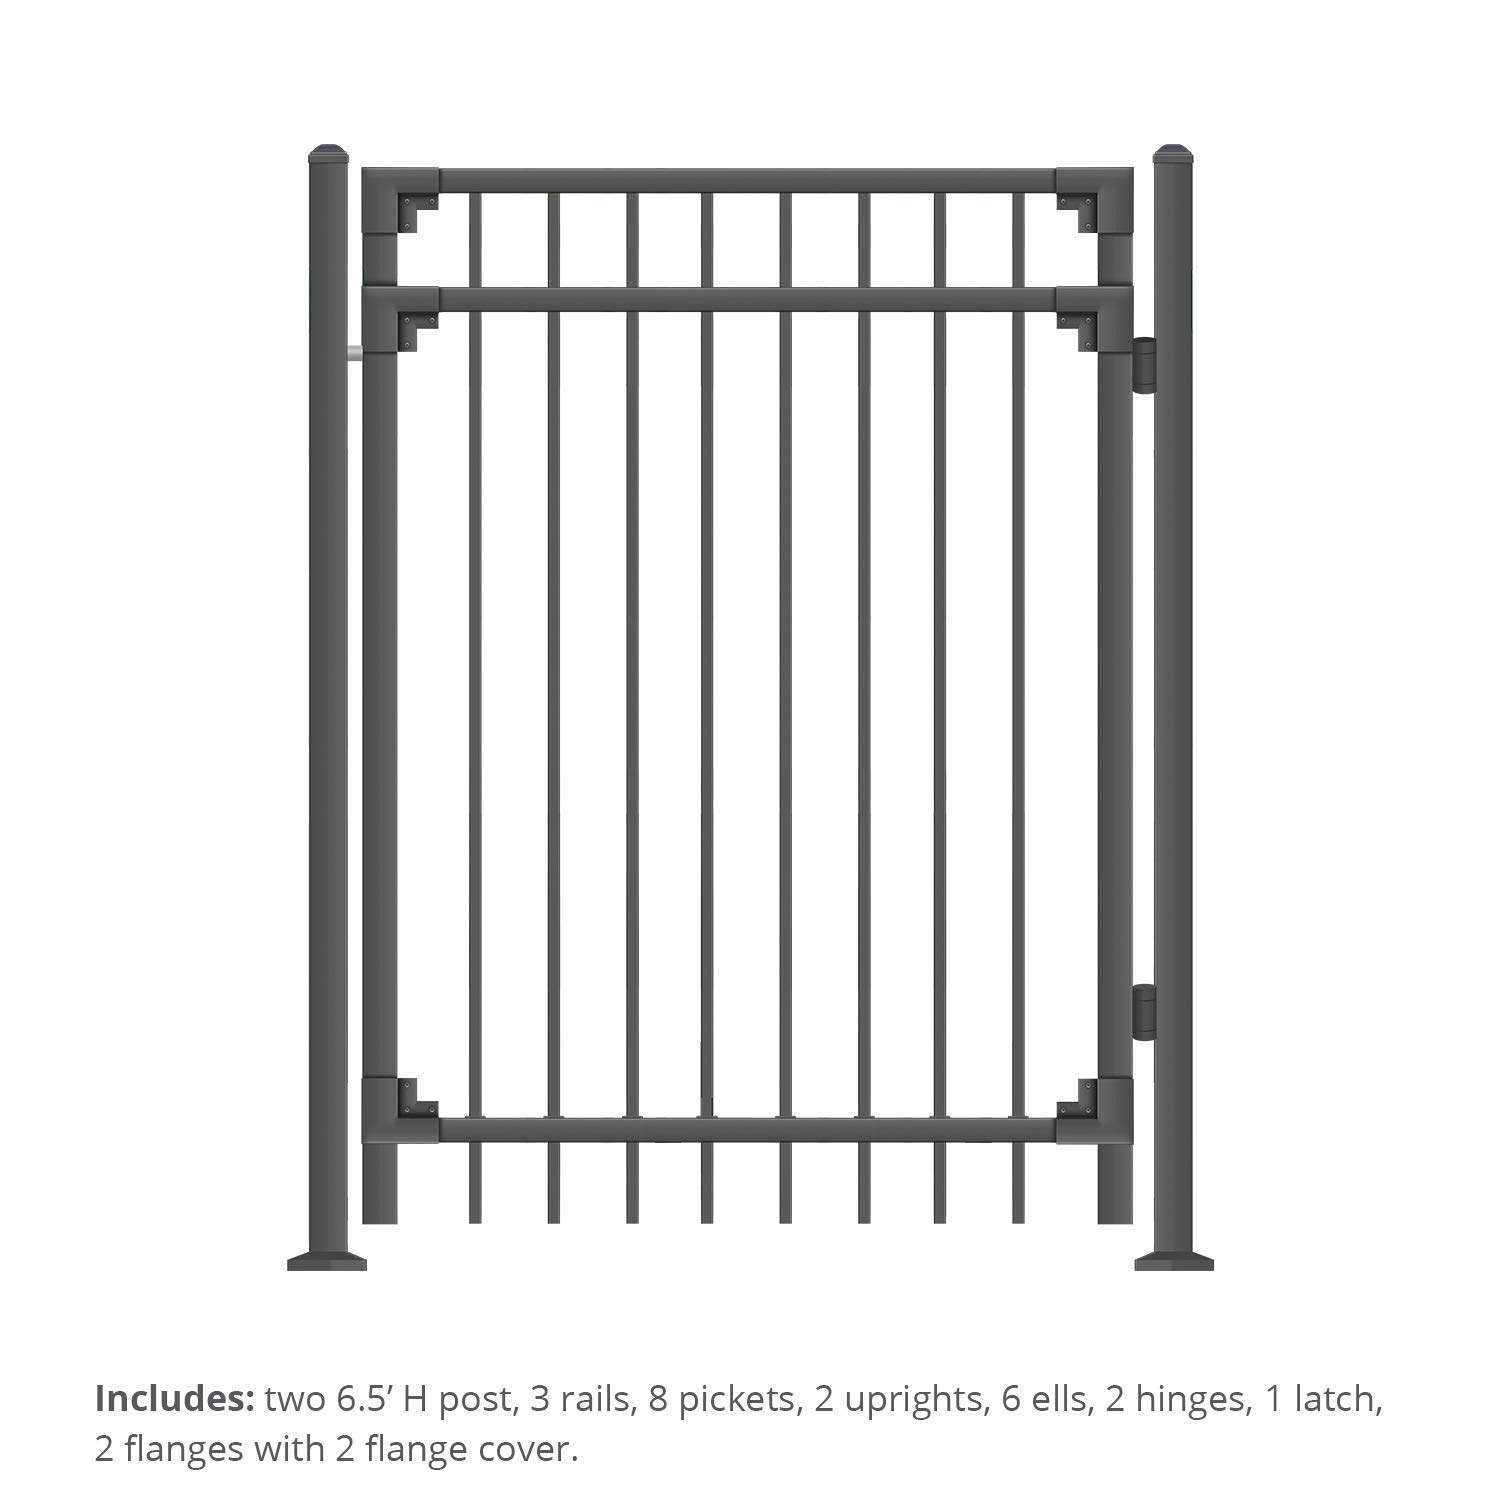 XCEL - Black Steel Fence Gate Cortina Style Flat End Pickets - 4ft W x 5ft H - DIY Installation Kit, for Outdoor, Yard, Patio, Entry Way, on Soil or Concrete, 3-Rail Mental Gate by XCEL